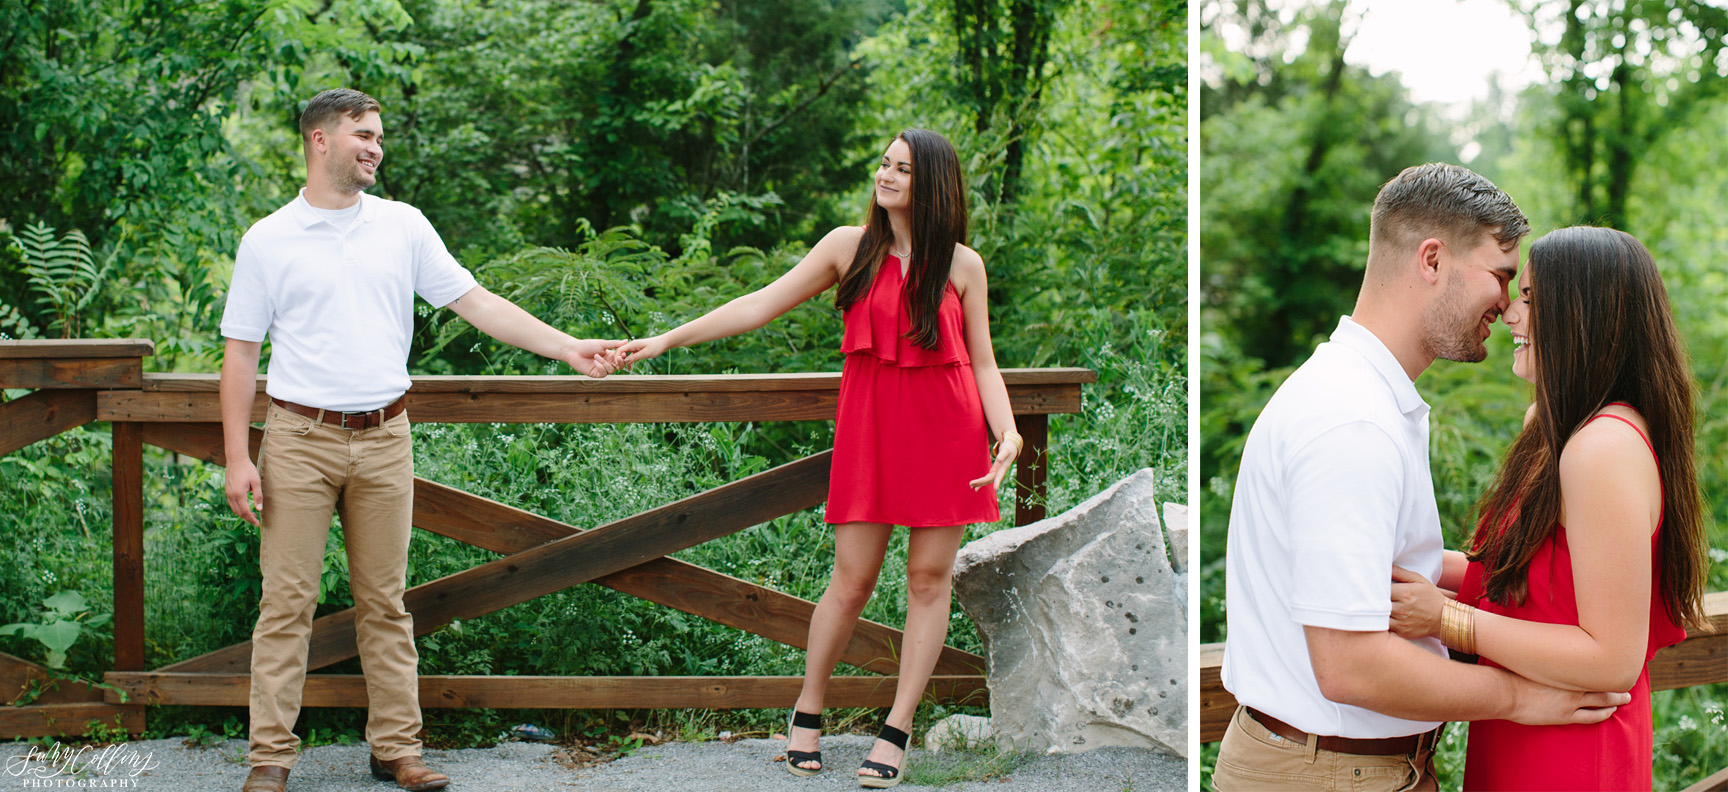 poses, couples, outdoor, meads quarry, Knoxville, Tennessee, engagement, sunset, evening, love, vibrant, colorful, bright, creative, romantic, natural, light and airy, natural light, passion, inspiration, intimate, outfits, fountain, woods, pond, park